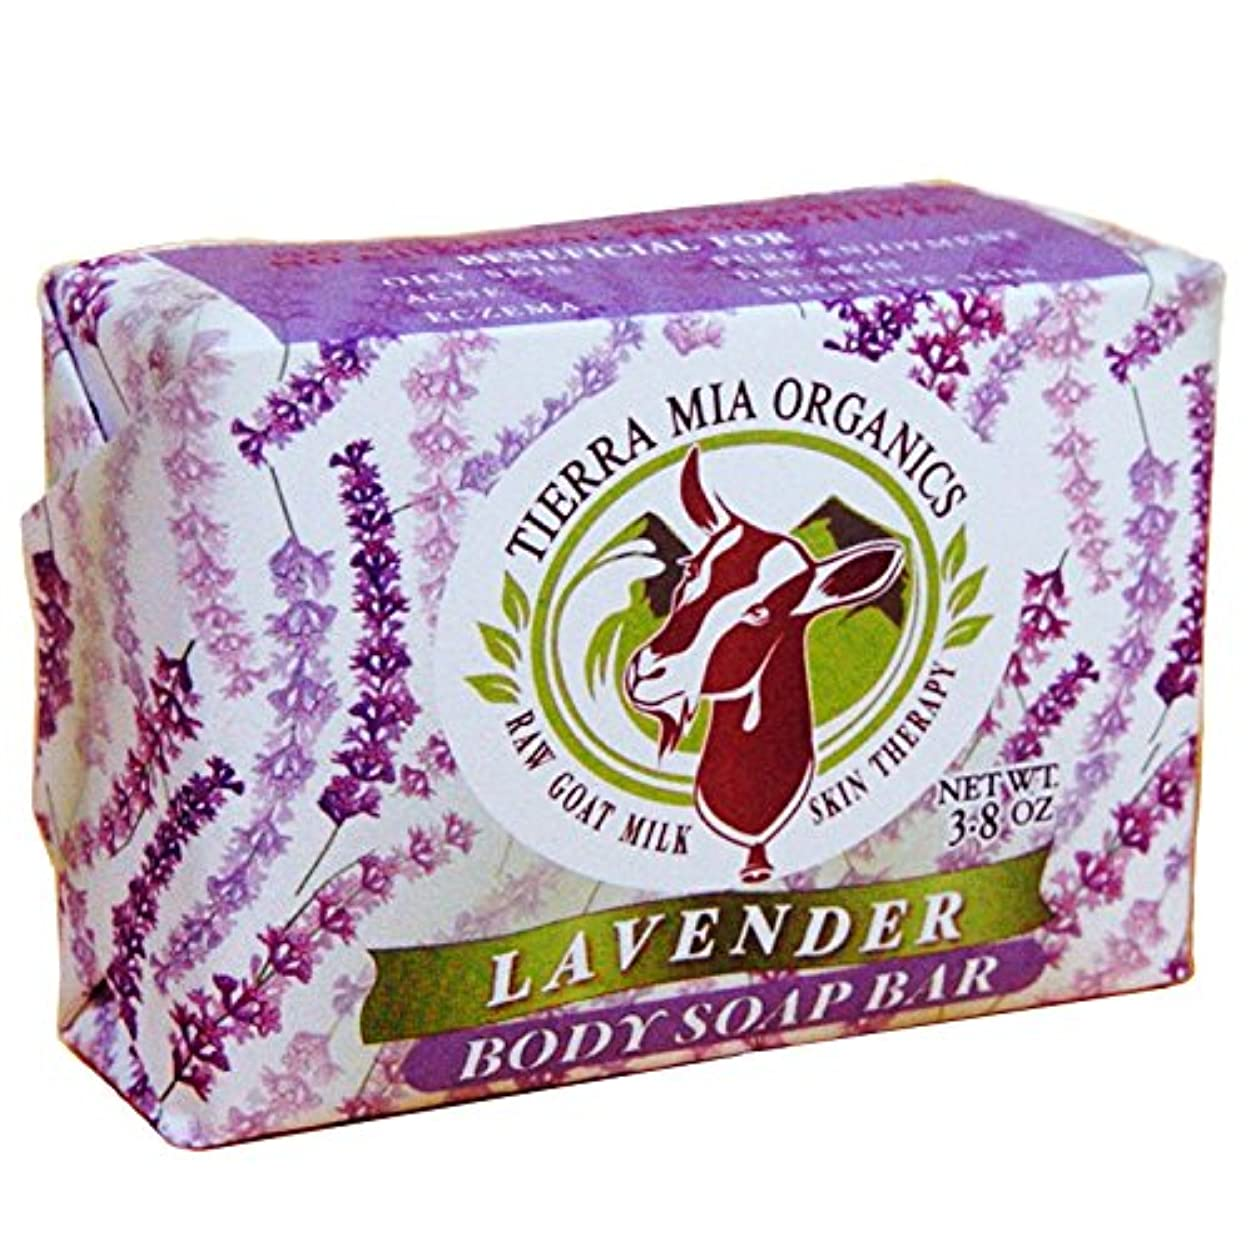 触手デンプシークランシーTierra Mia Organics, Raw Goat Milk Skin Therapy, Body Soap Bar, Lavender, 4.2 oz